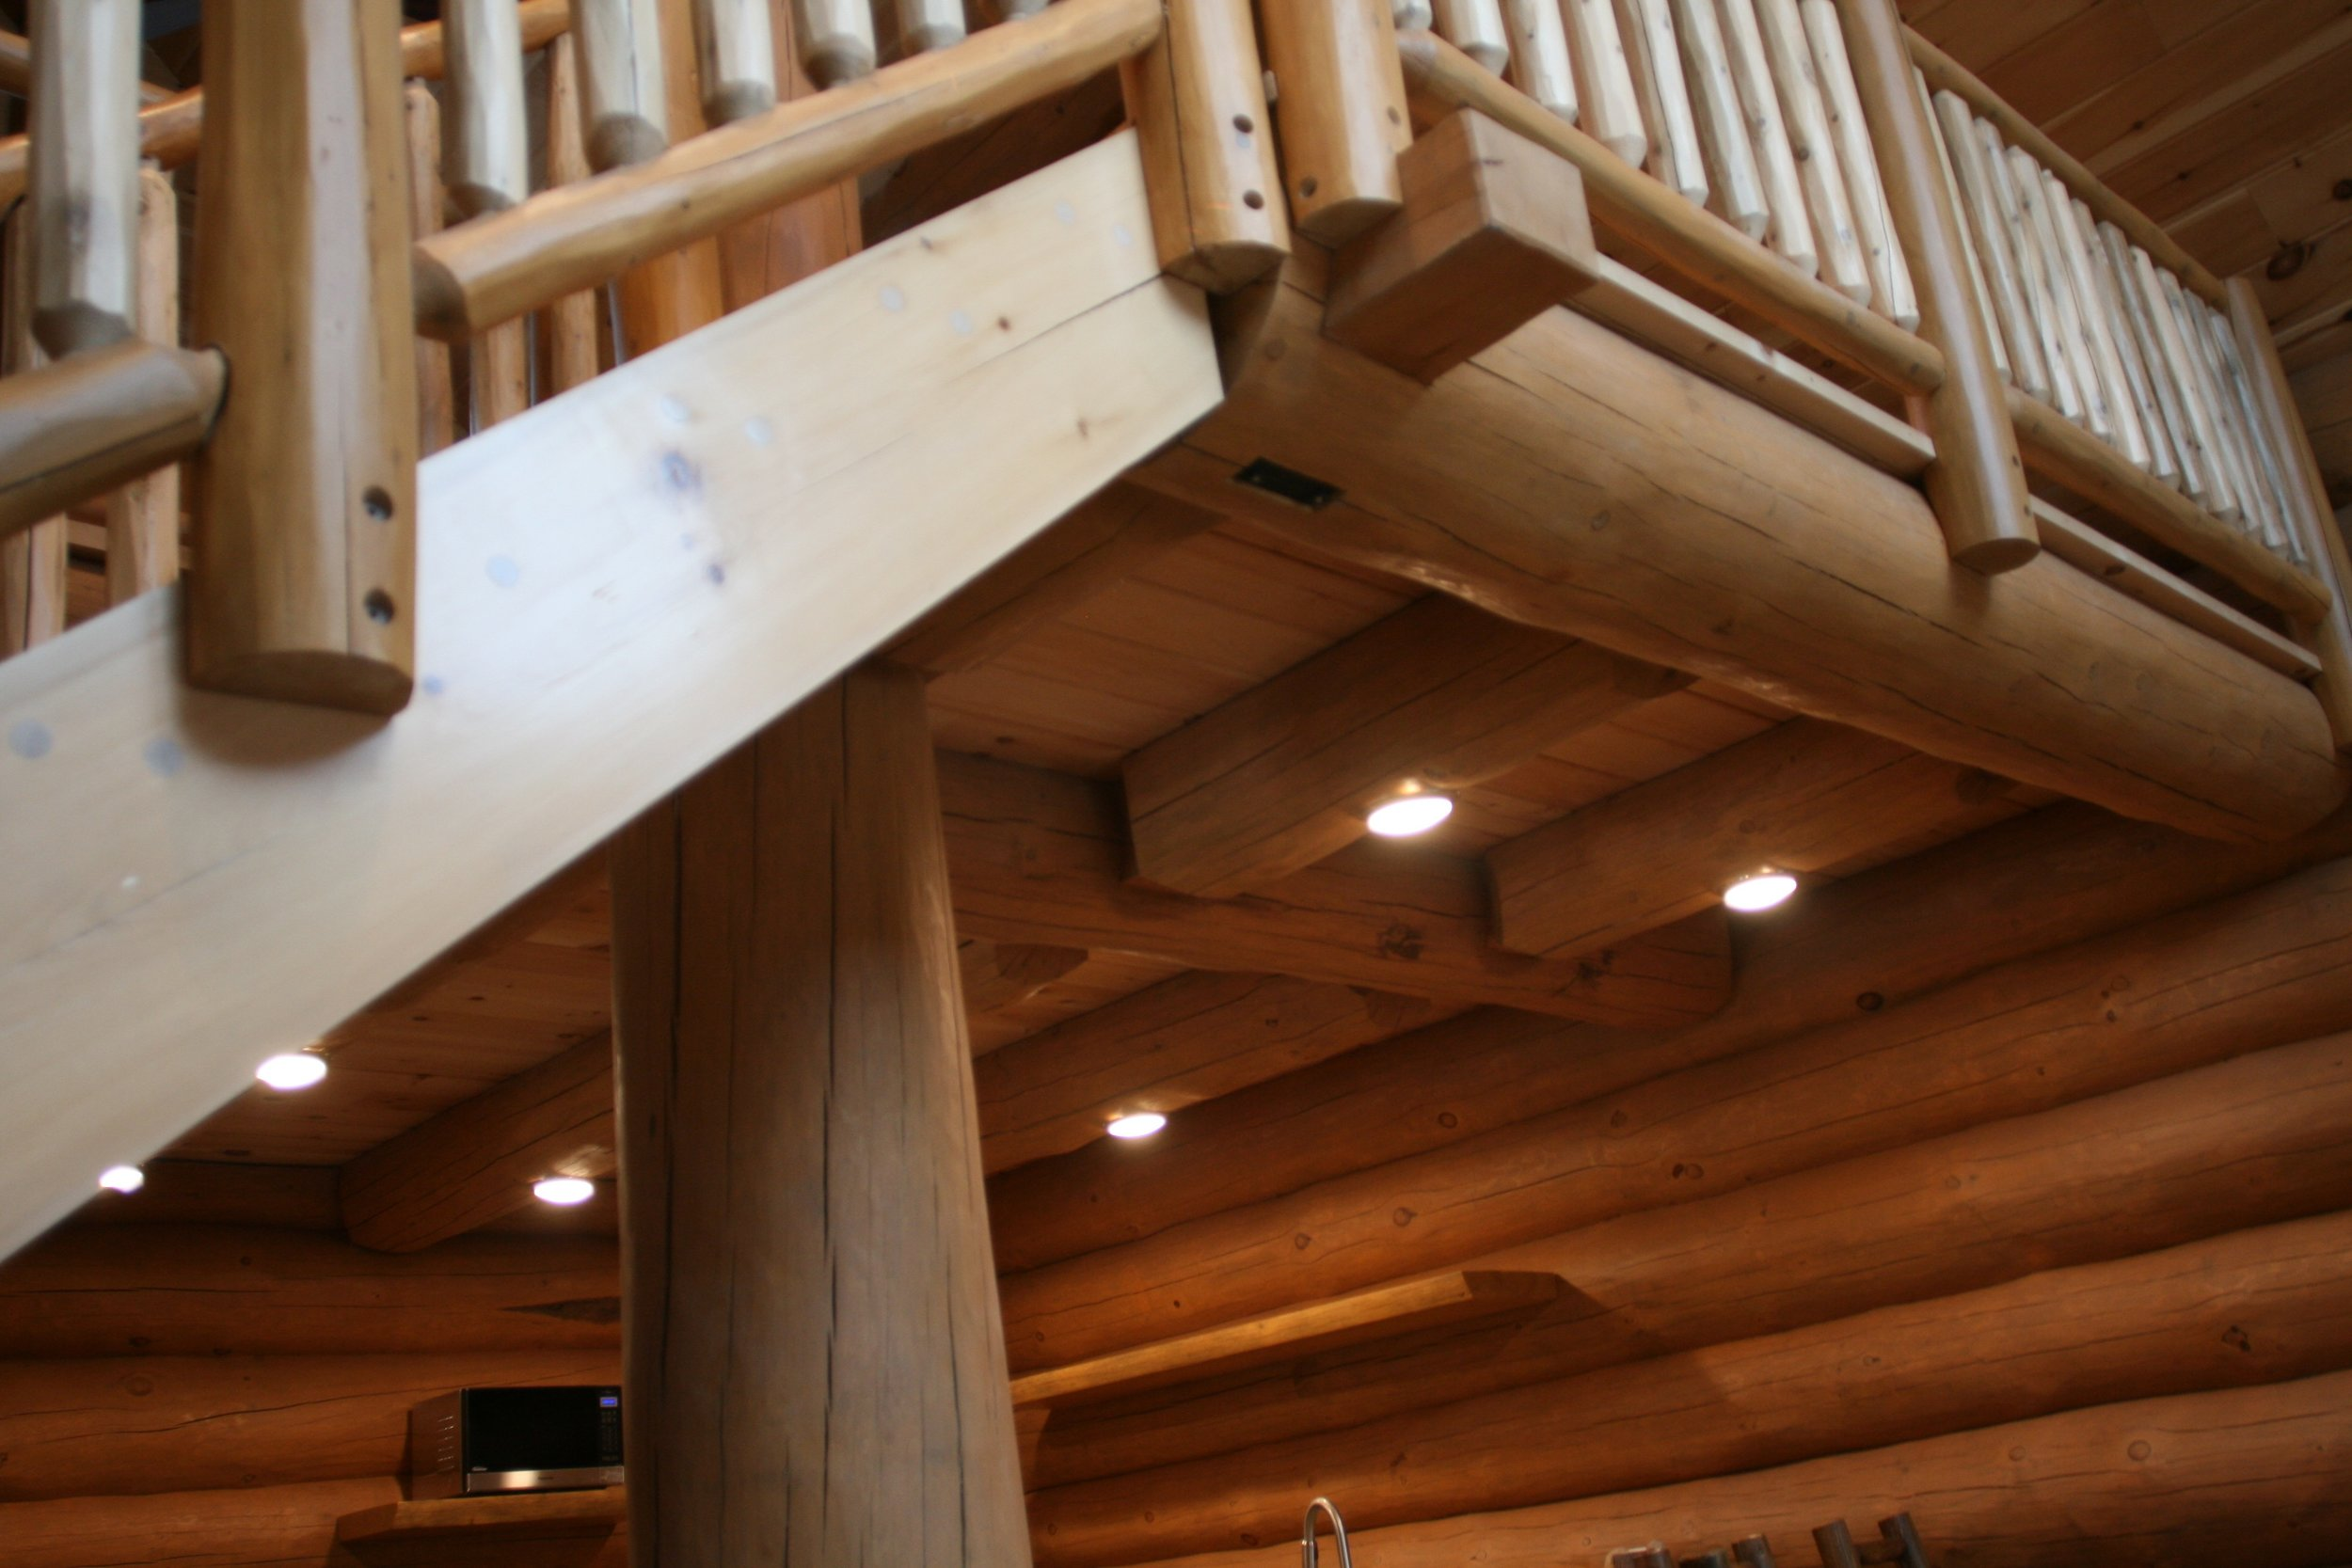 Log cabin loft. Log hand rails.